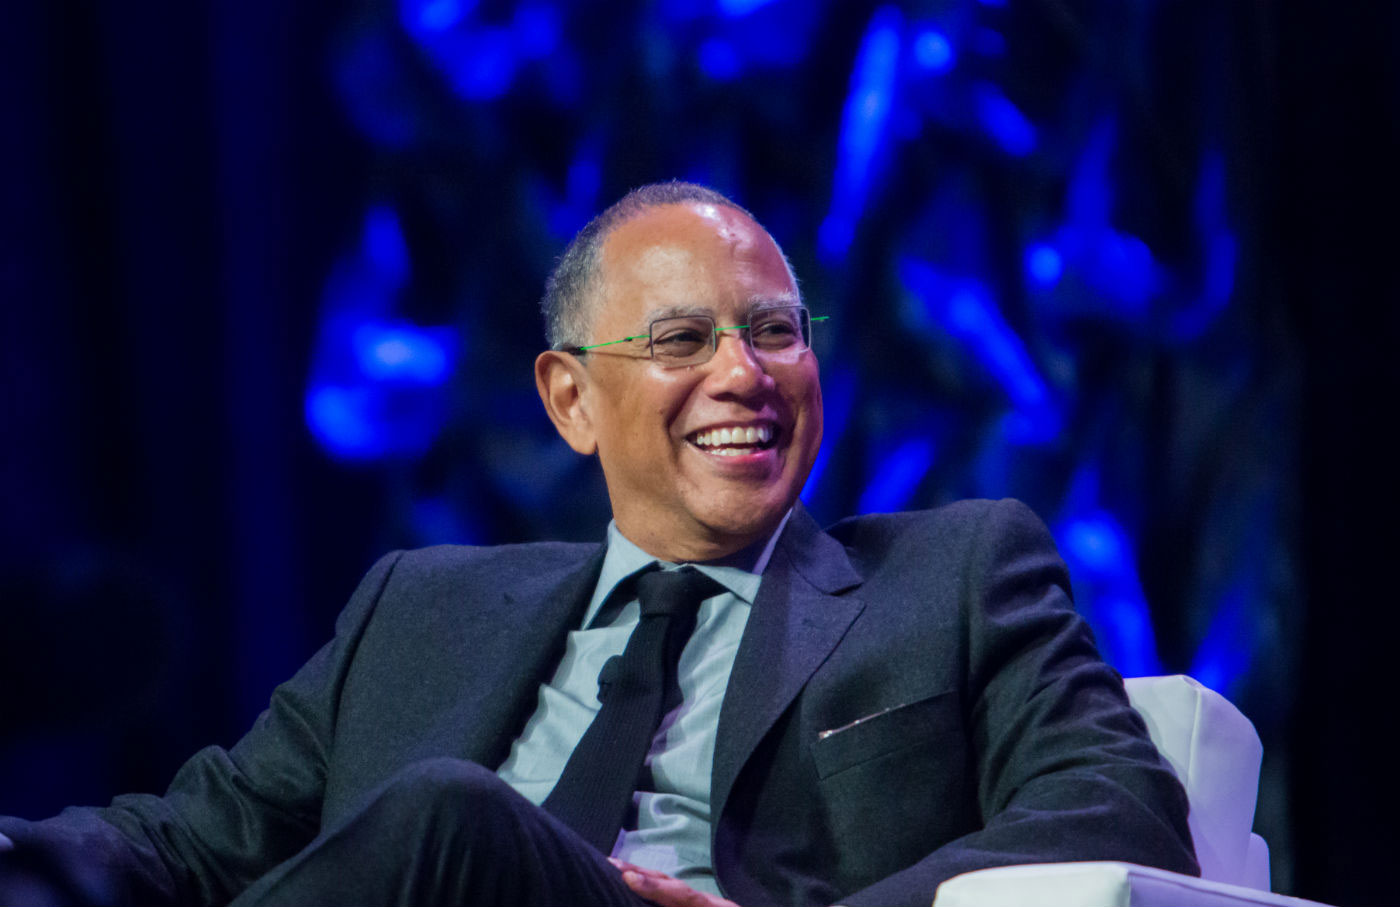 The New York Times Dean Baquet at SXSW